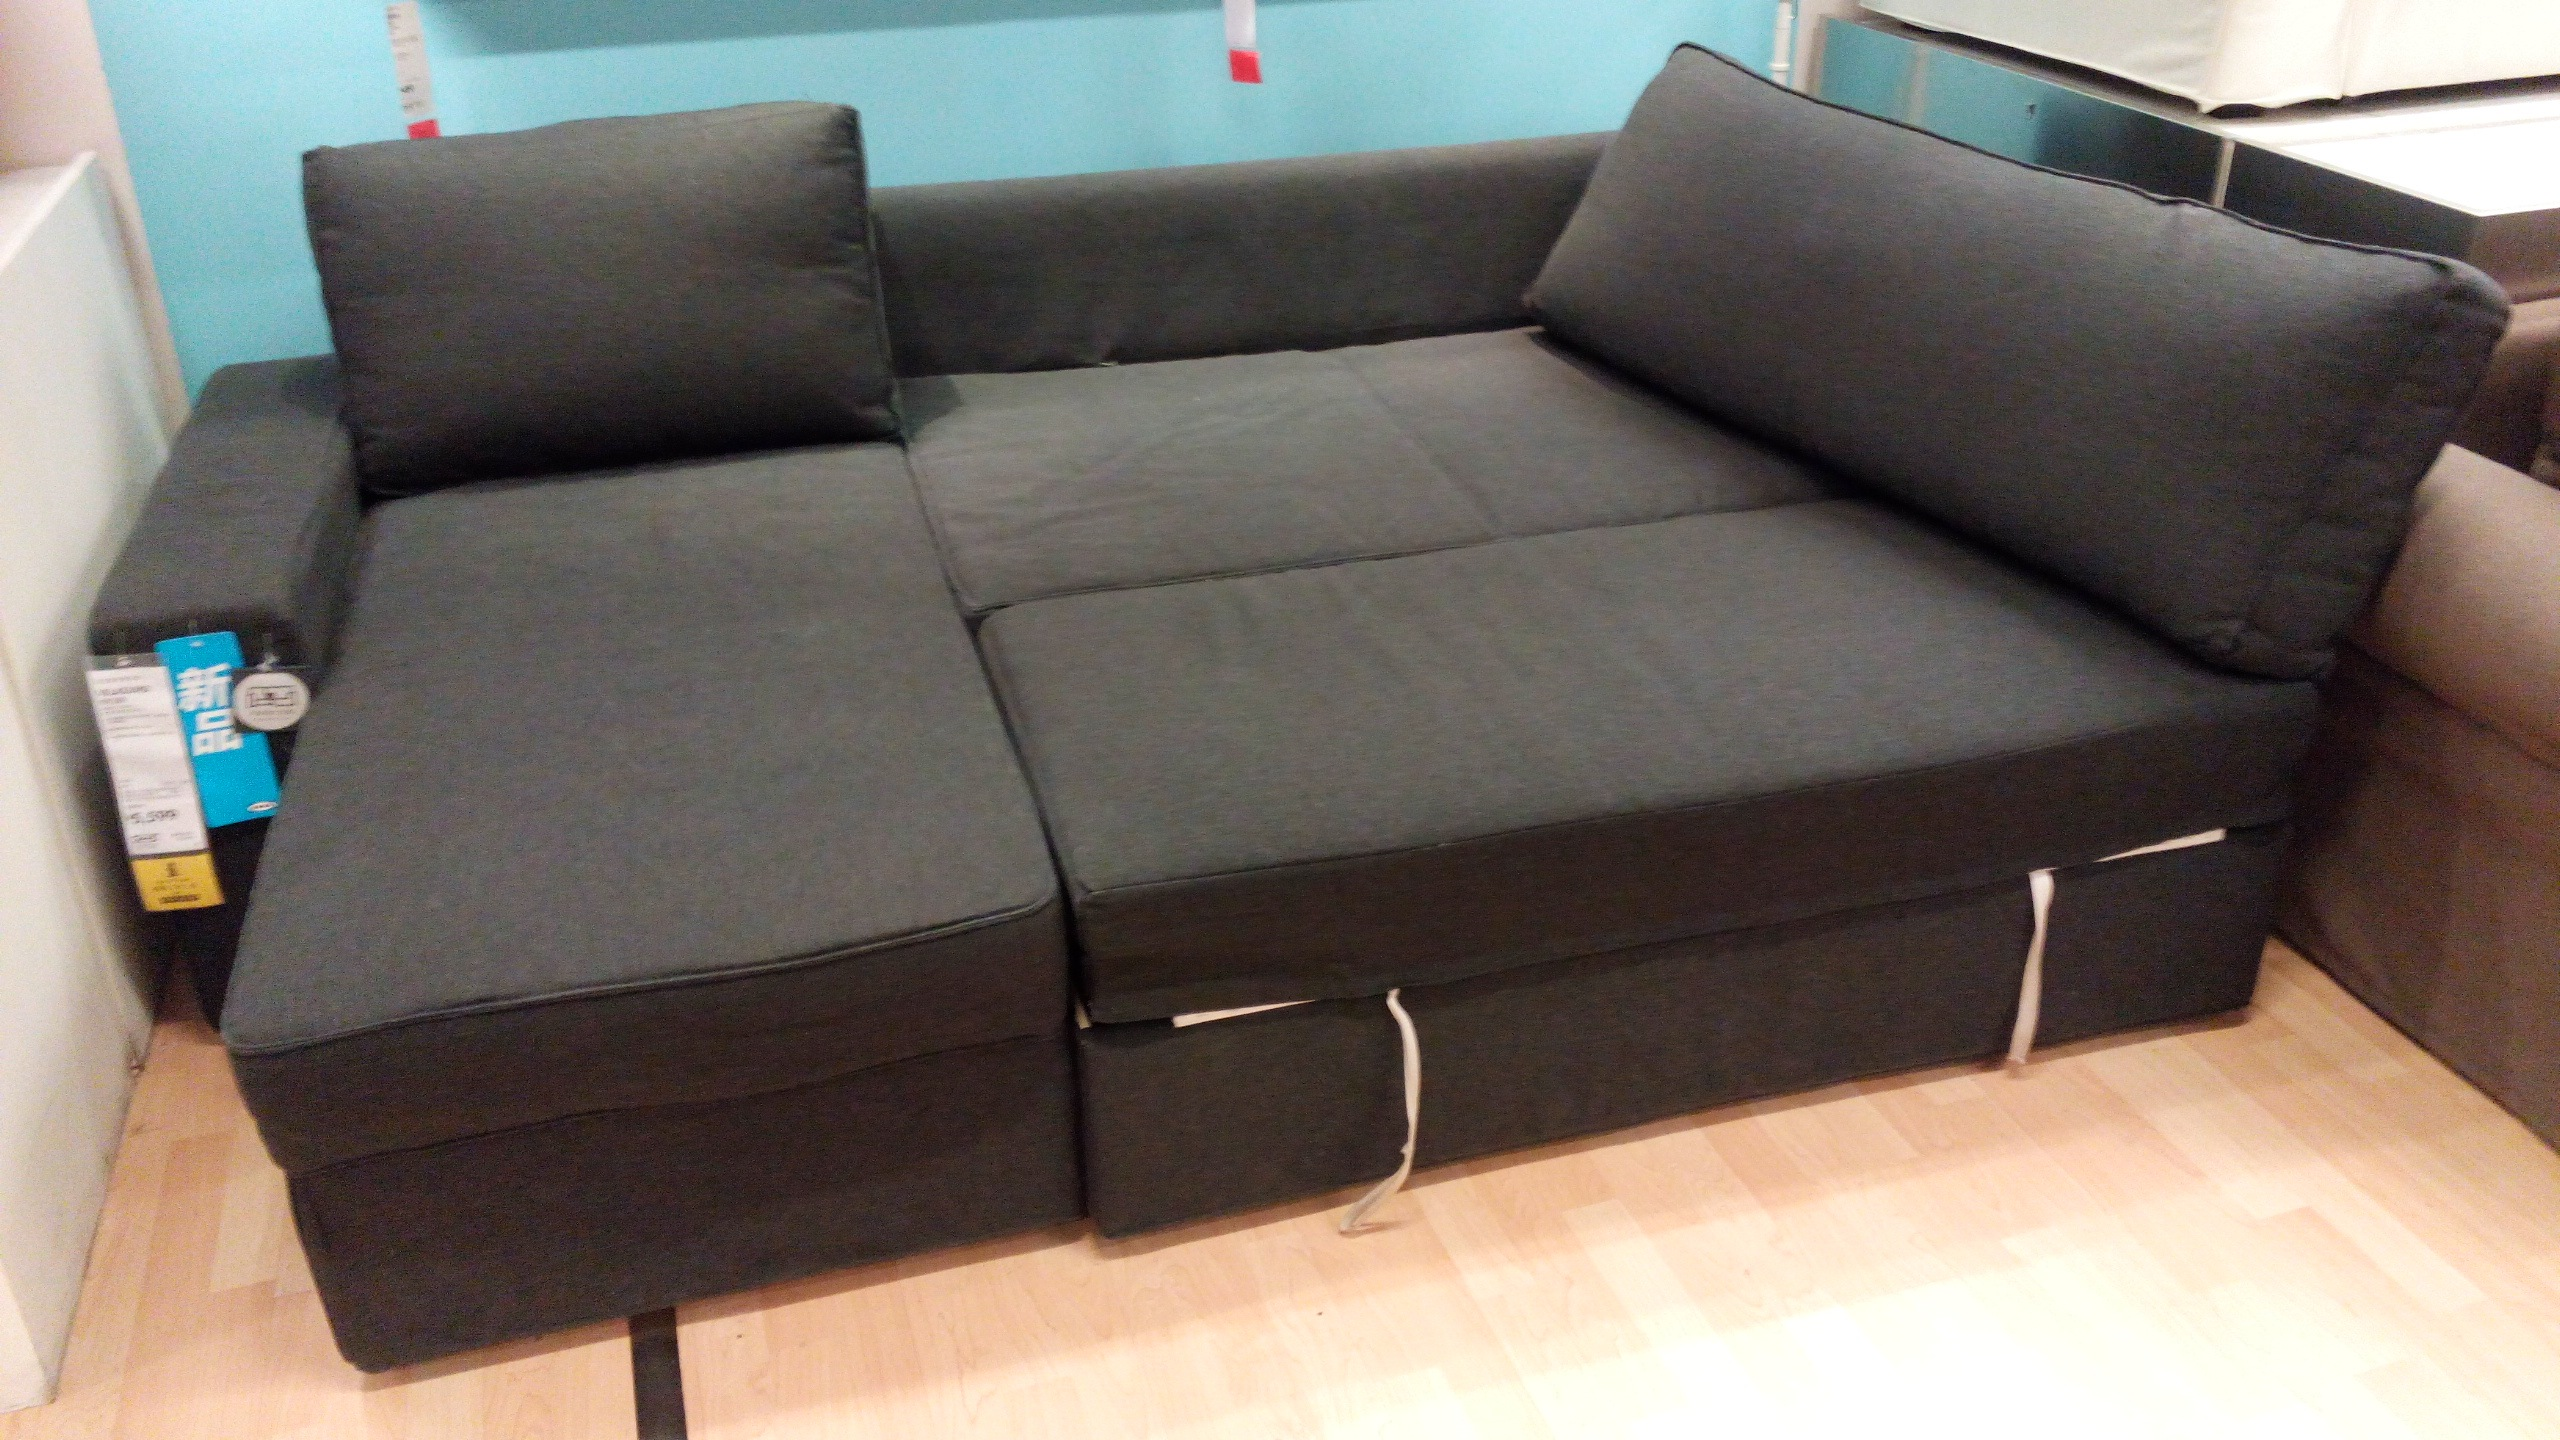 Top 10 Ikea Sofa Beds Reviewed Jan 2019 Sleep Good Tonight